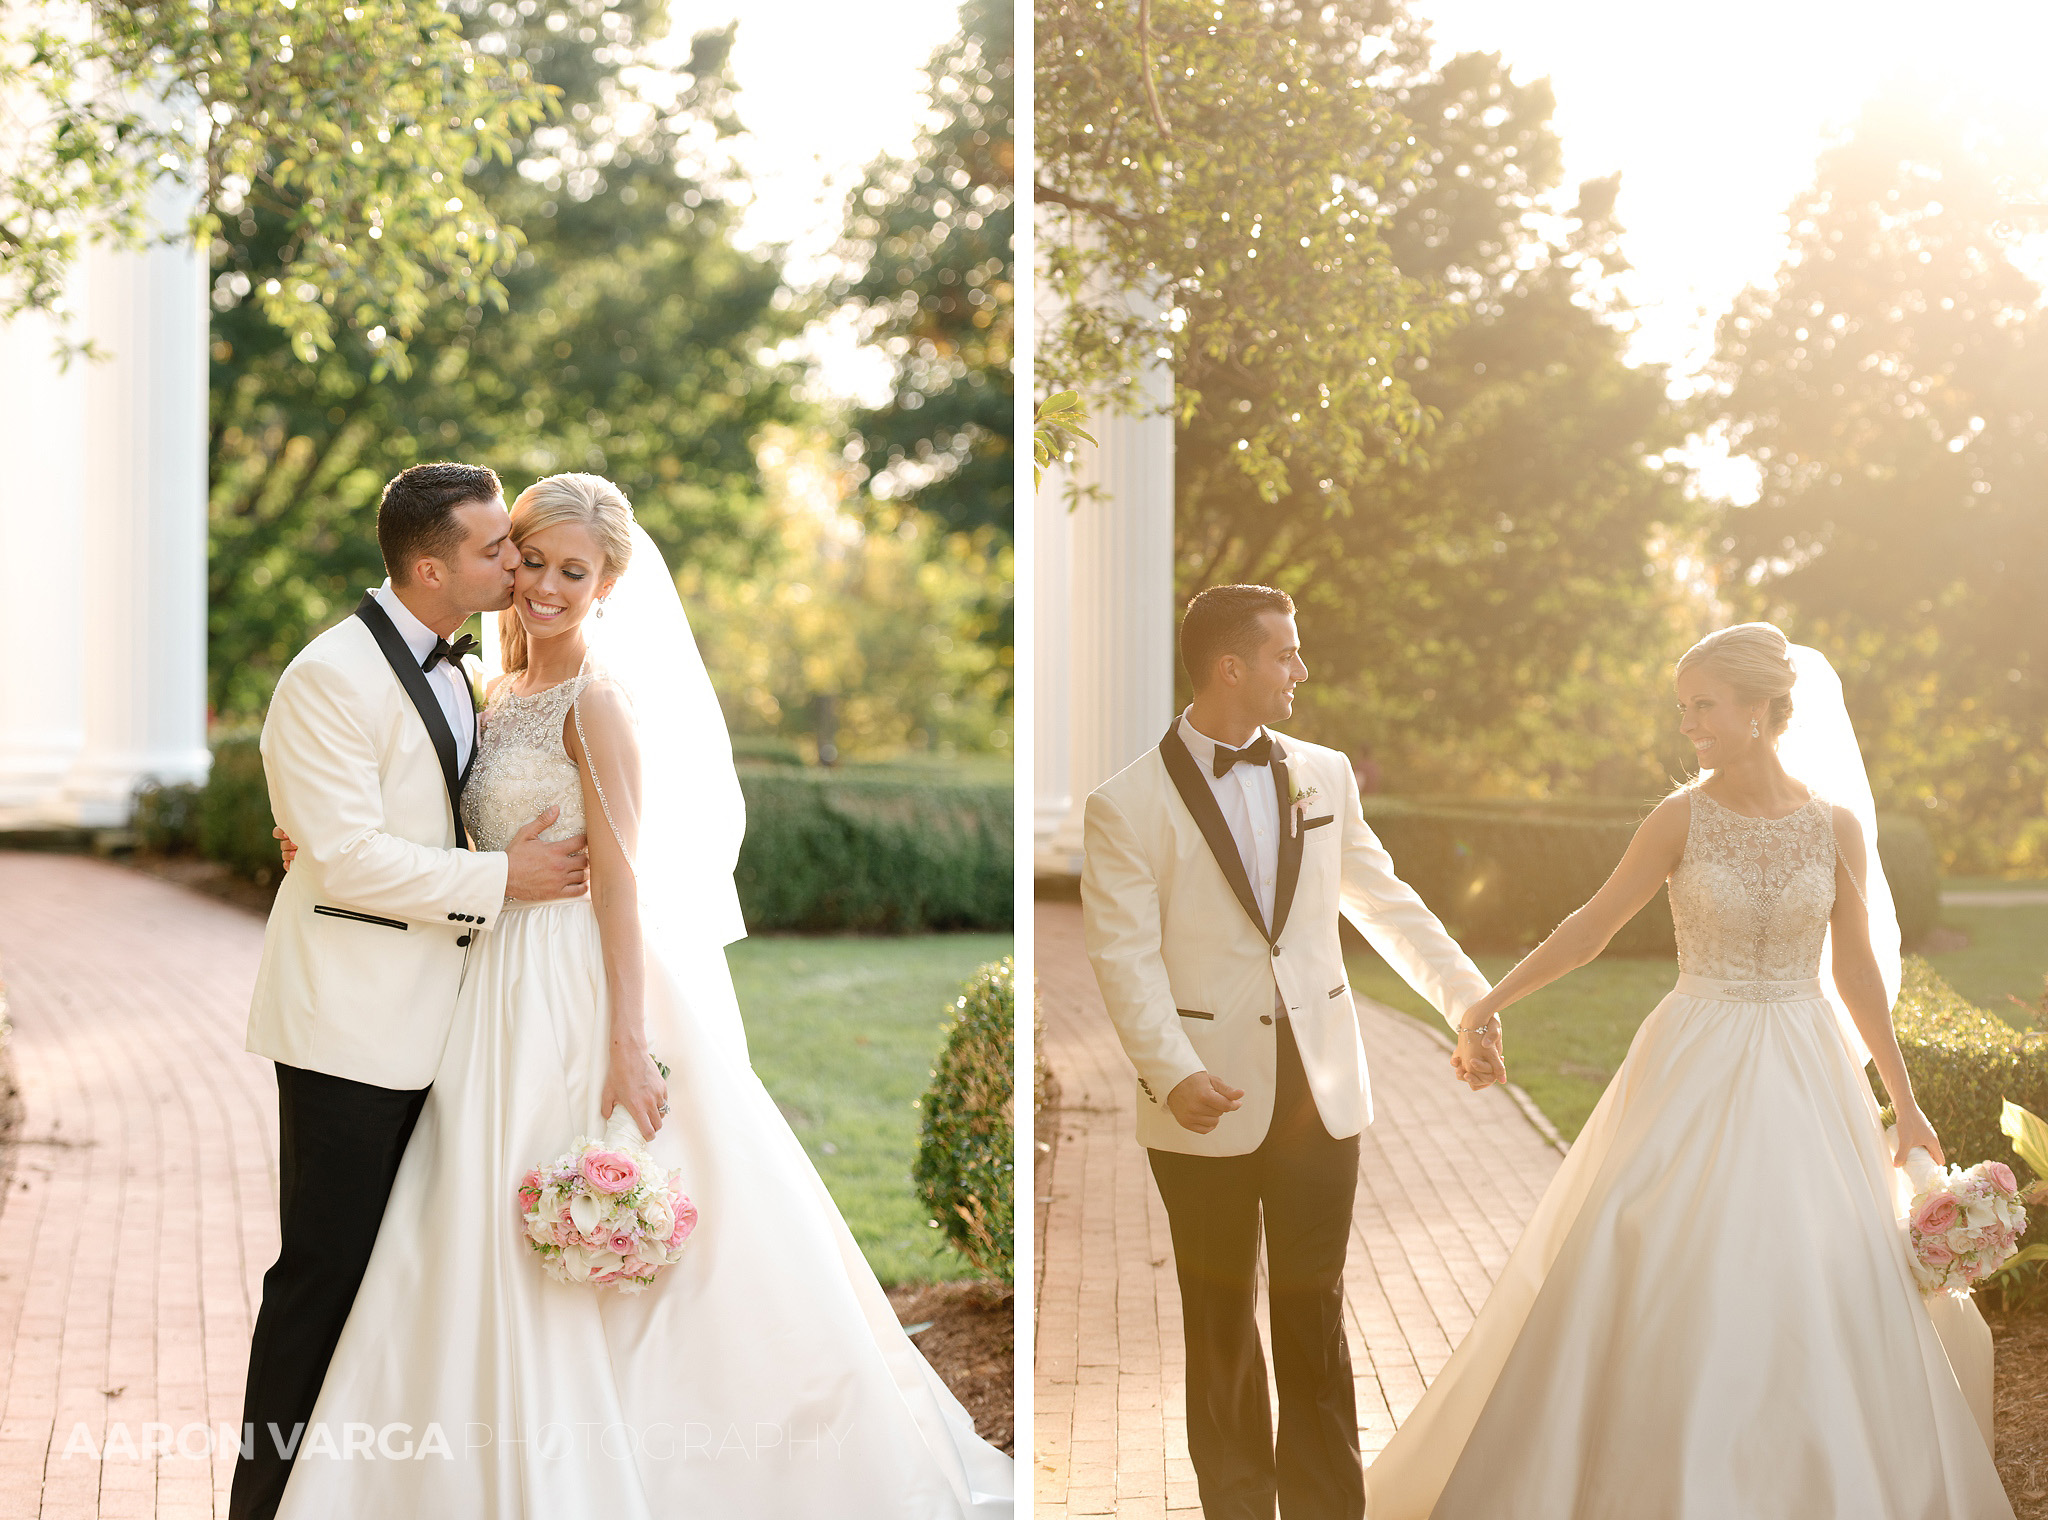 28 oglebay wheeling wedding - Gina + Chris | Oglebay Resort Wedding Photos